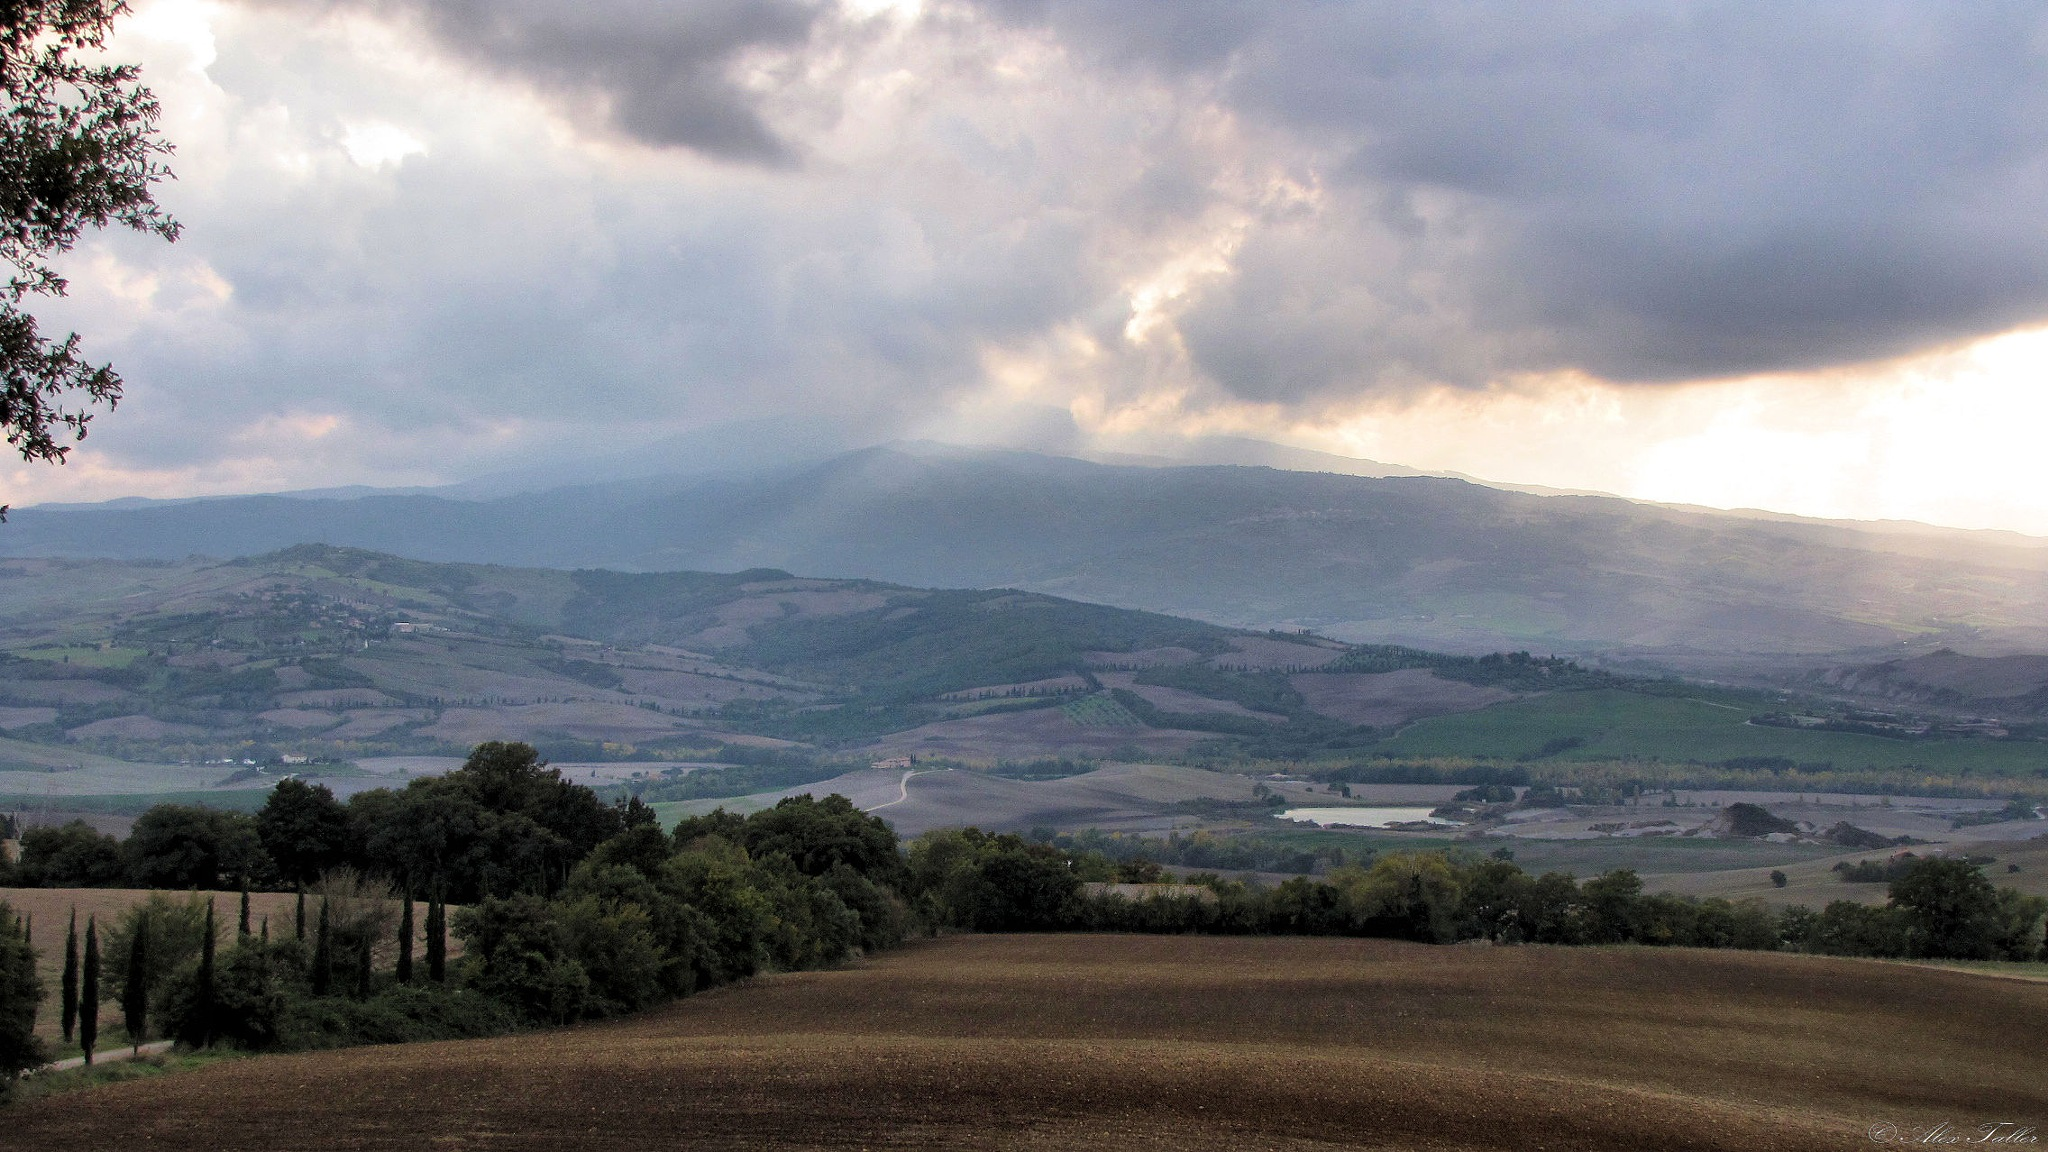 A view of Val d'Orcia from La Foce by +Alex Taller